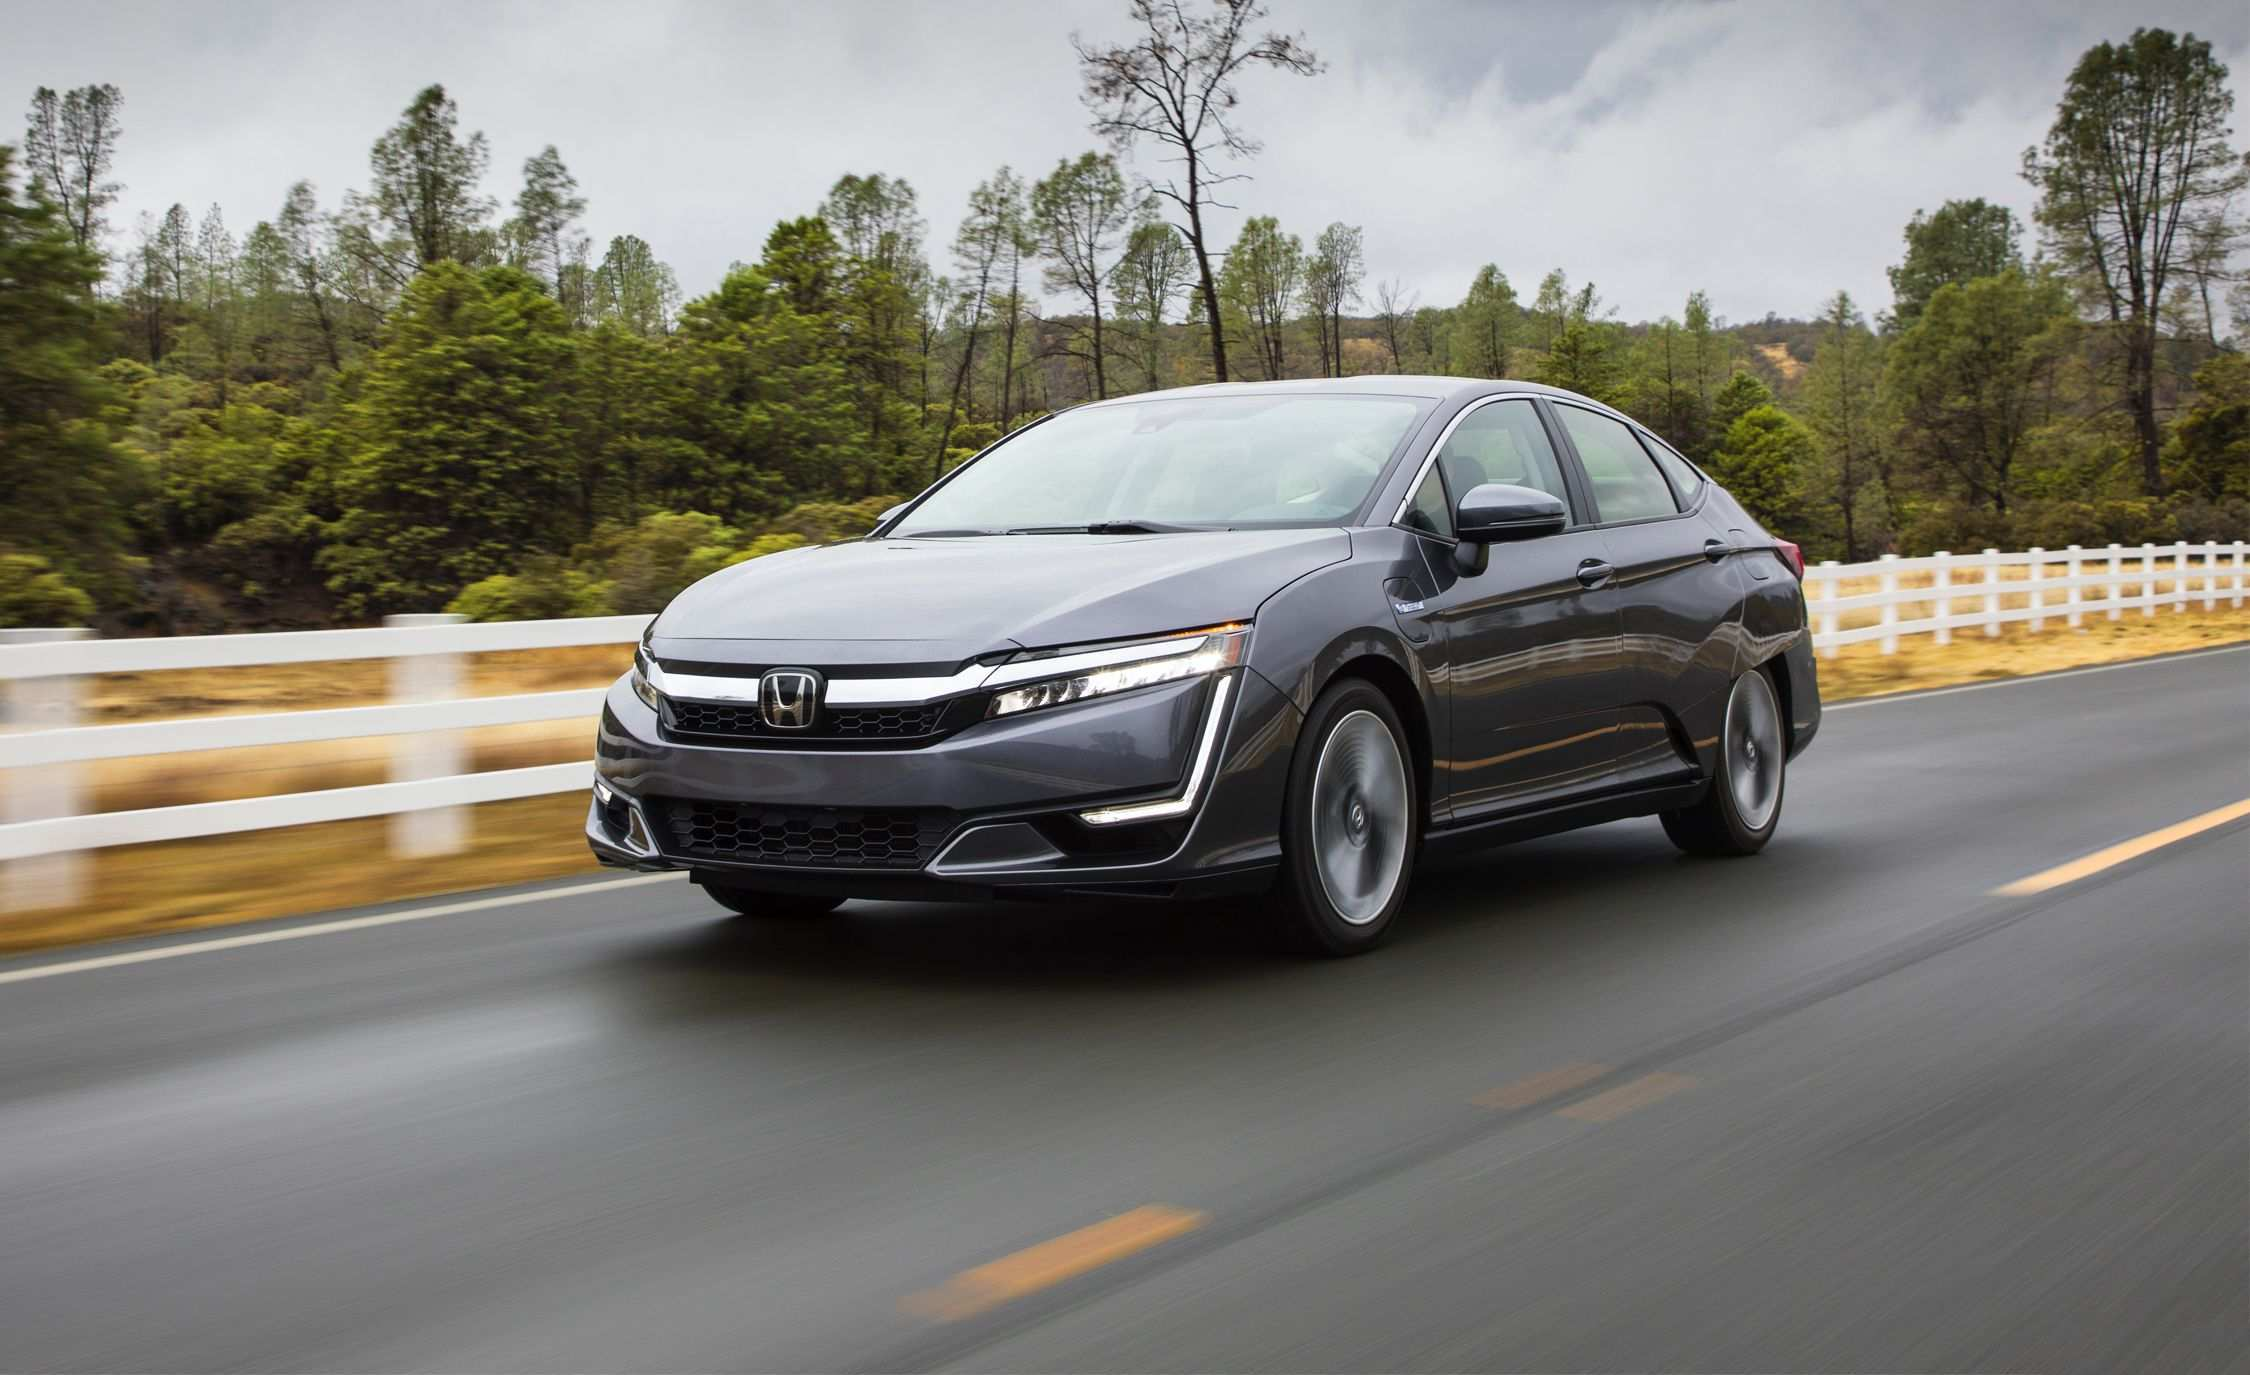 99 All New 2020 Honda Clarity Plug In Hybrid Pictures by 2020 Honda Clarity Plug In Hybrid